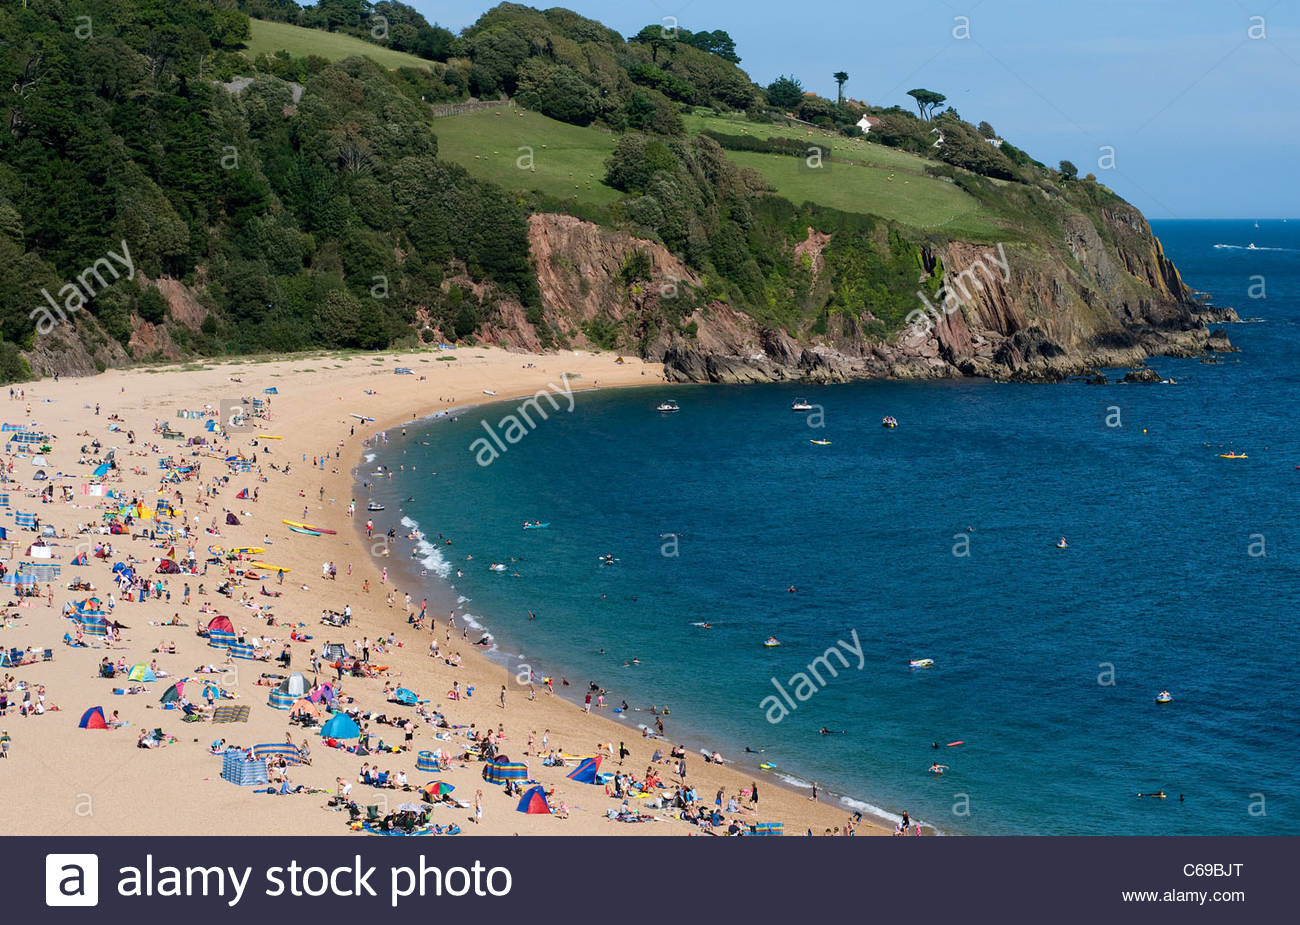 Princess Diana Beach West & South Coasts, Blackpool Sands in Peak summer,Princess Diana and James Hewitt ...